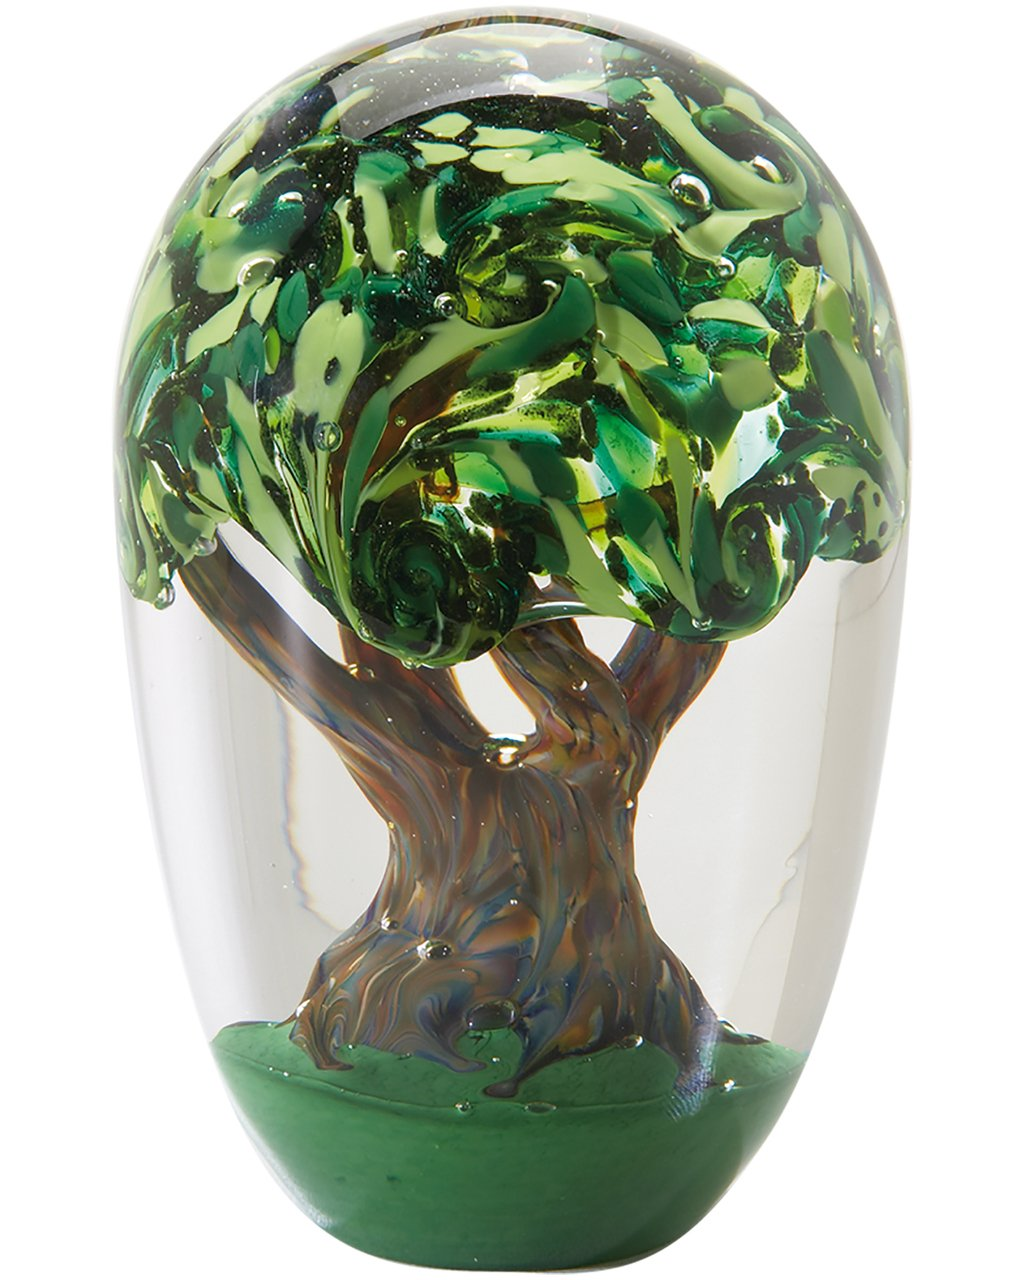 The Tree of Life Paperweight